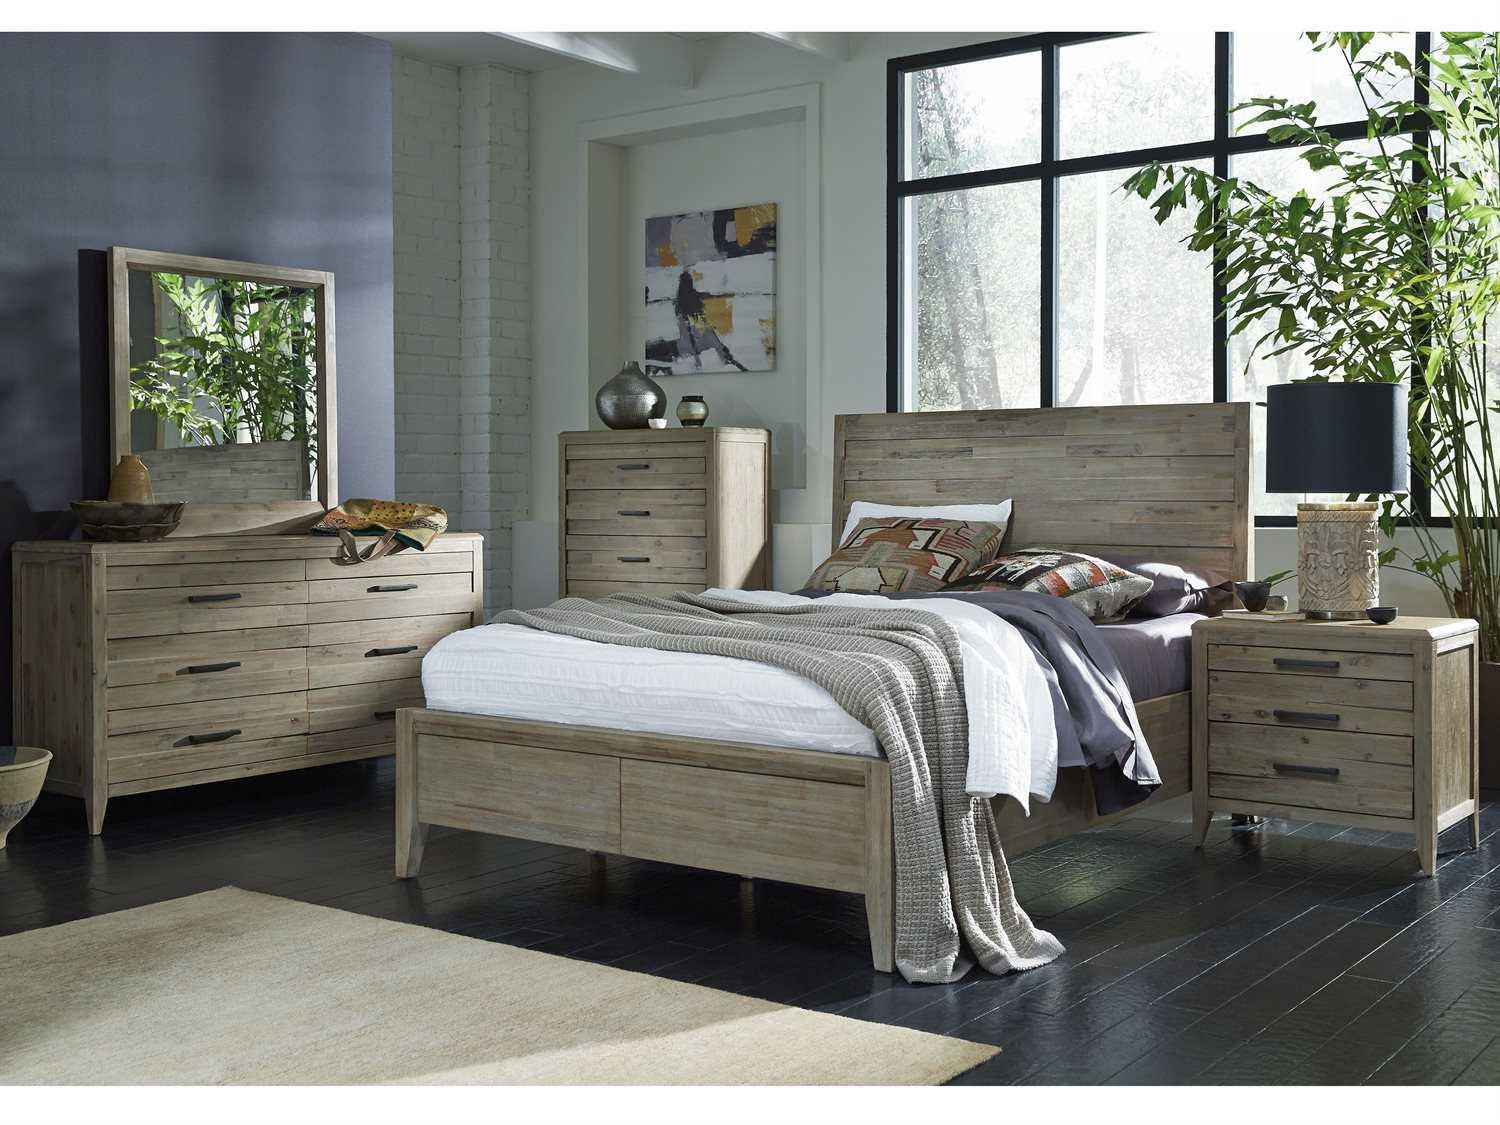 Casana Harbourside Weathered Acacia Six Drawer Dresser Mirror Set With Concealed Top Drawers